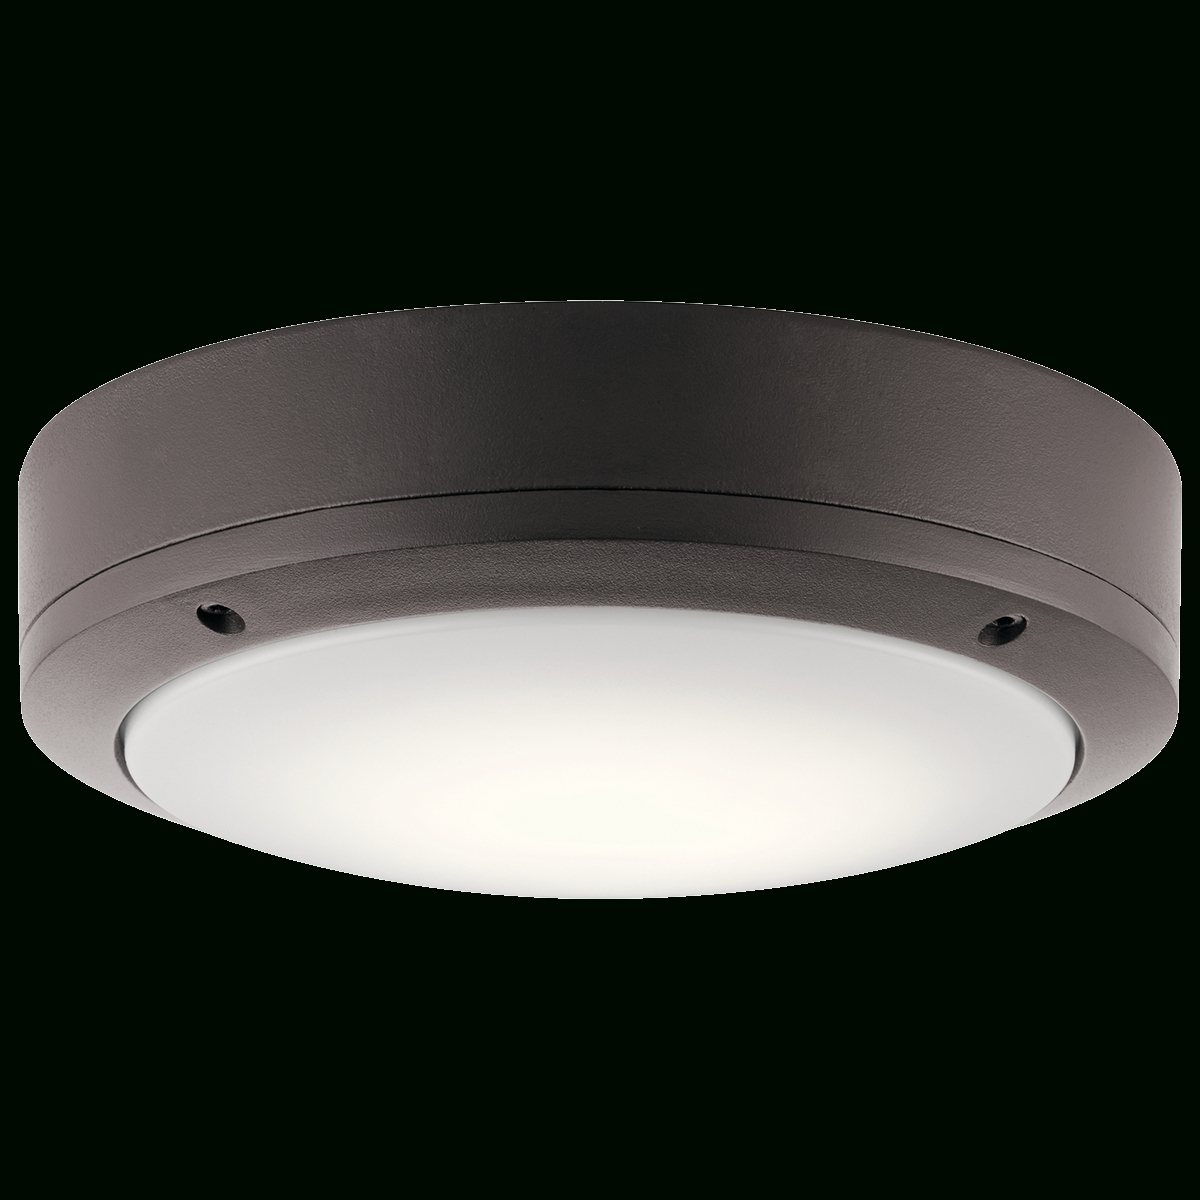 Outdoor Led Ceiling Light Fixtures – Outdoor Designs Regarding Most Current Outdoor Led Ceiling Lights (View 10 of 20)